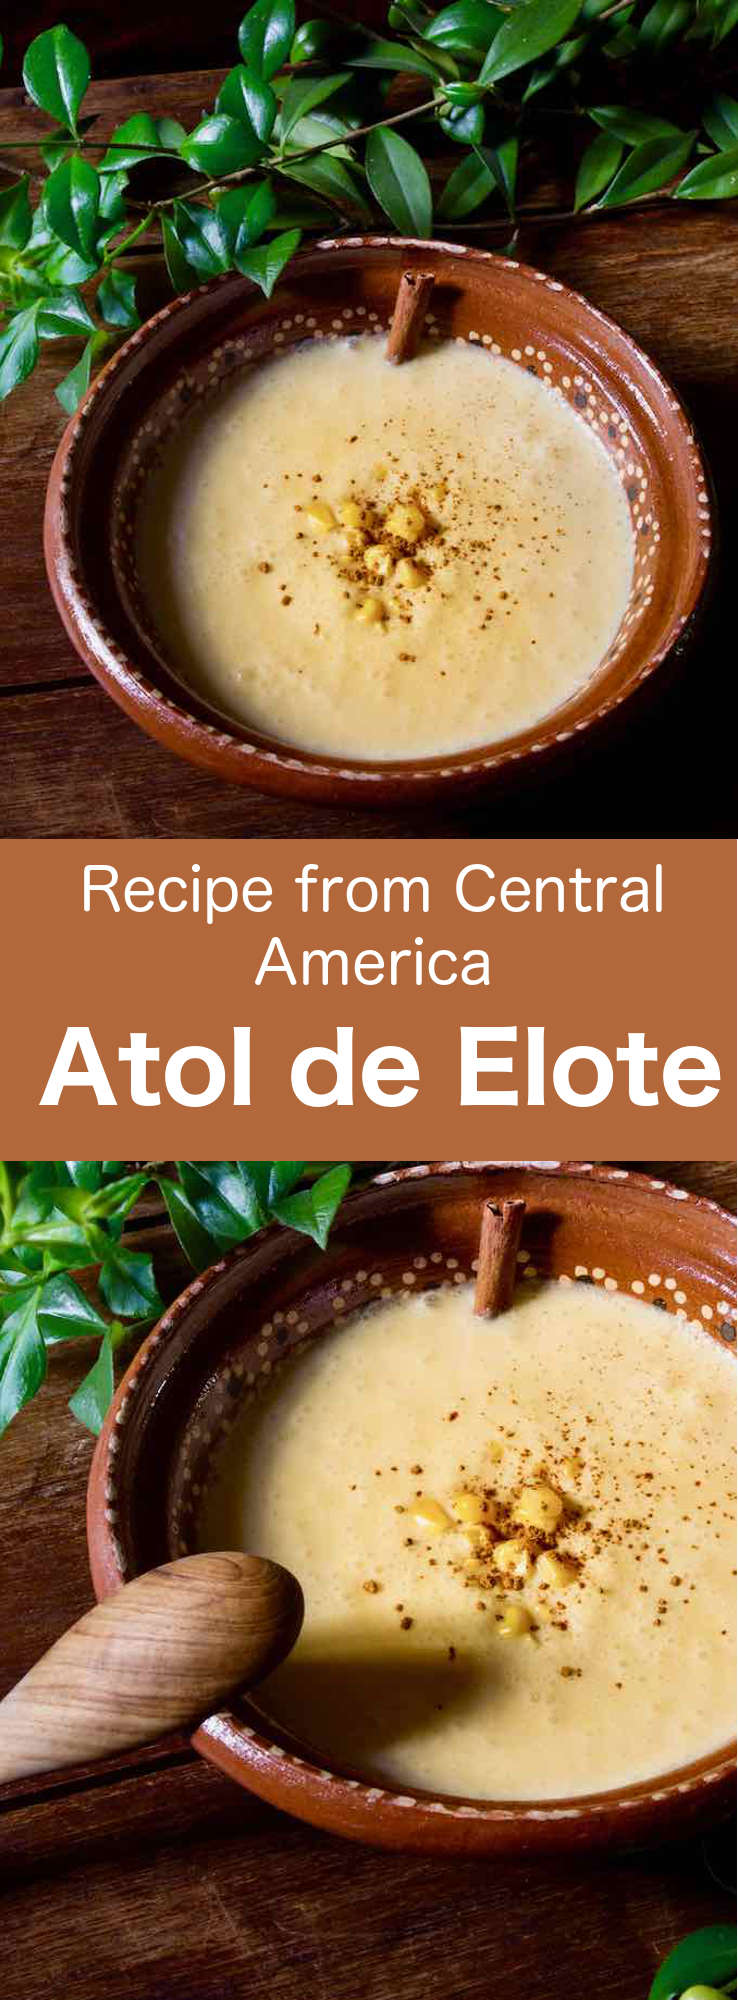 Atol de elote is a delicious sweet beverage made from corn. A creation of the Mayan civilization, it is now popular in Central America. #Honduras #HondurasCuisine #HondurasRecipe #HondurasDrink #WorldCuisine #196flavors